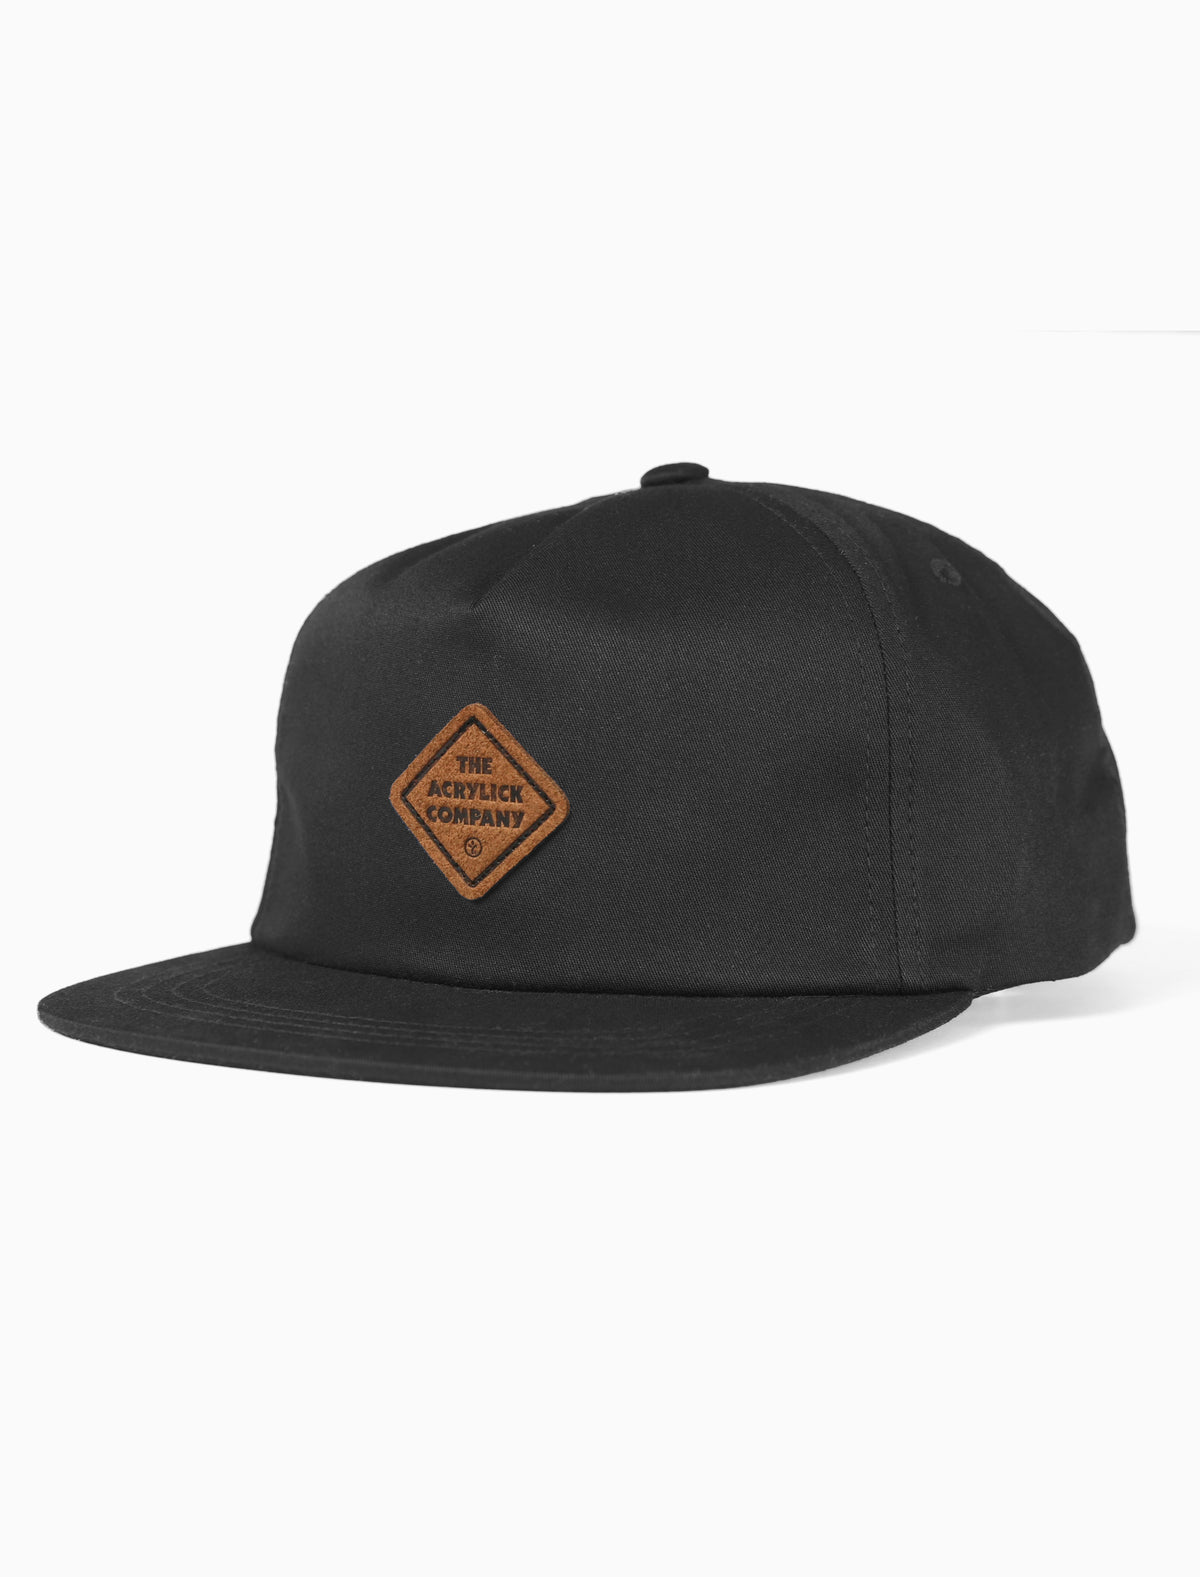 Acrylick Company - Midnighters Snapback Black